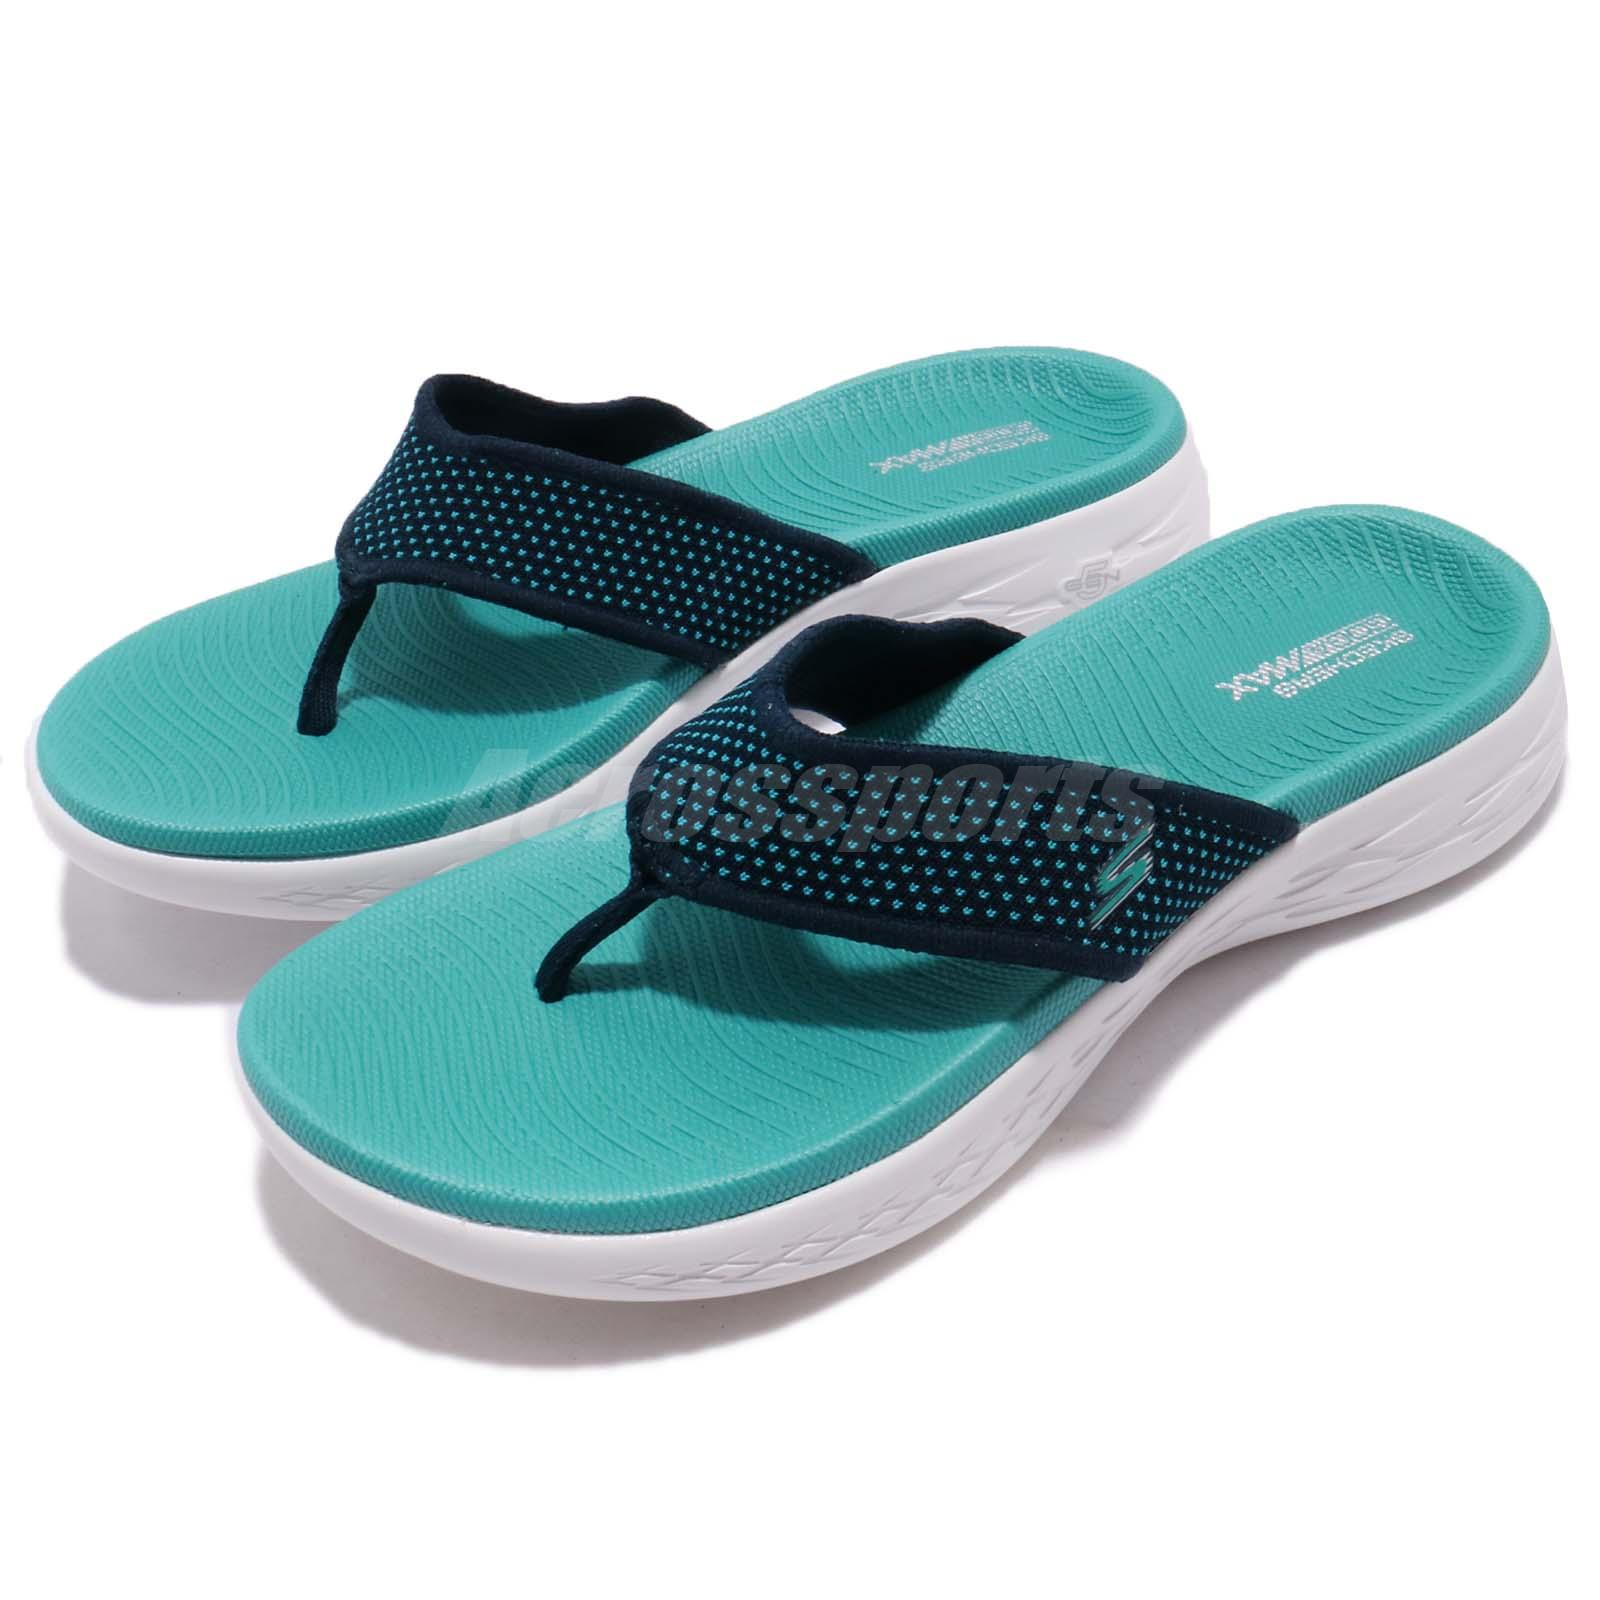 0189331c88 Details about Skechers On-The-Go 600 Navy Turquoise Women Sandal Thong  Flip-Flops 15300-NVTQ